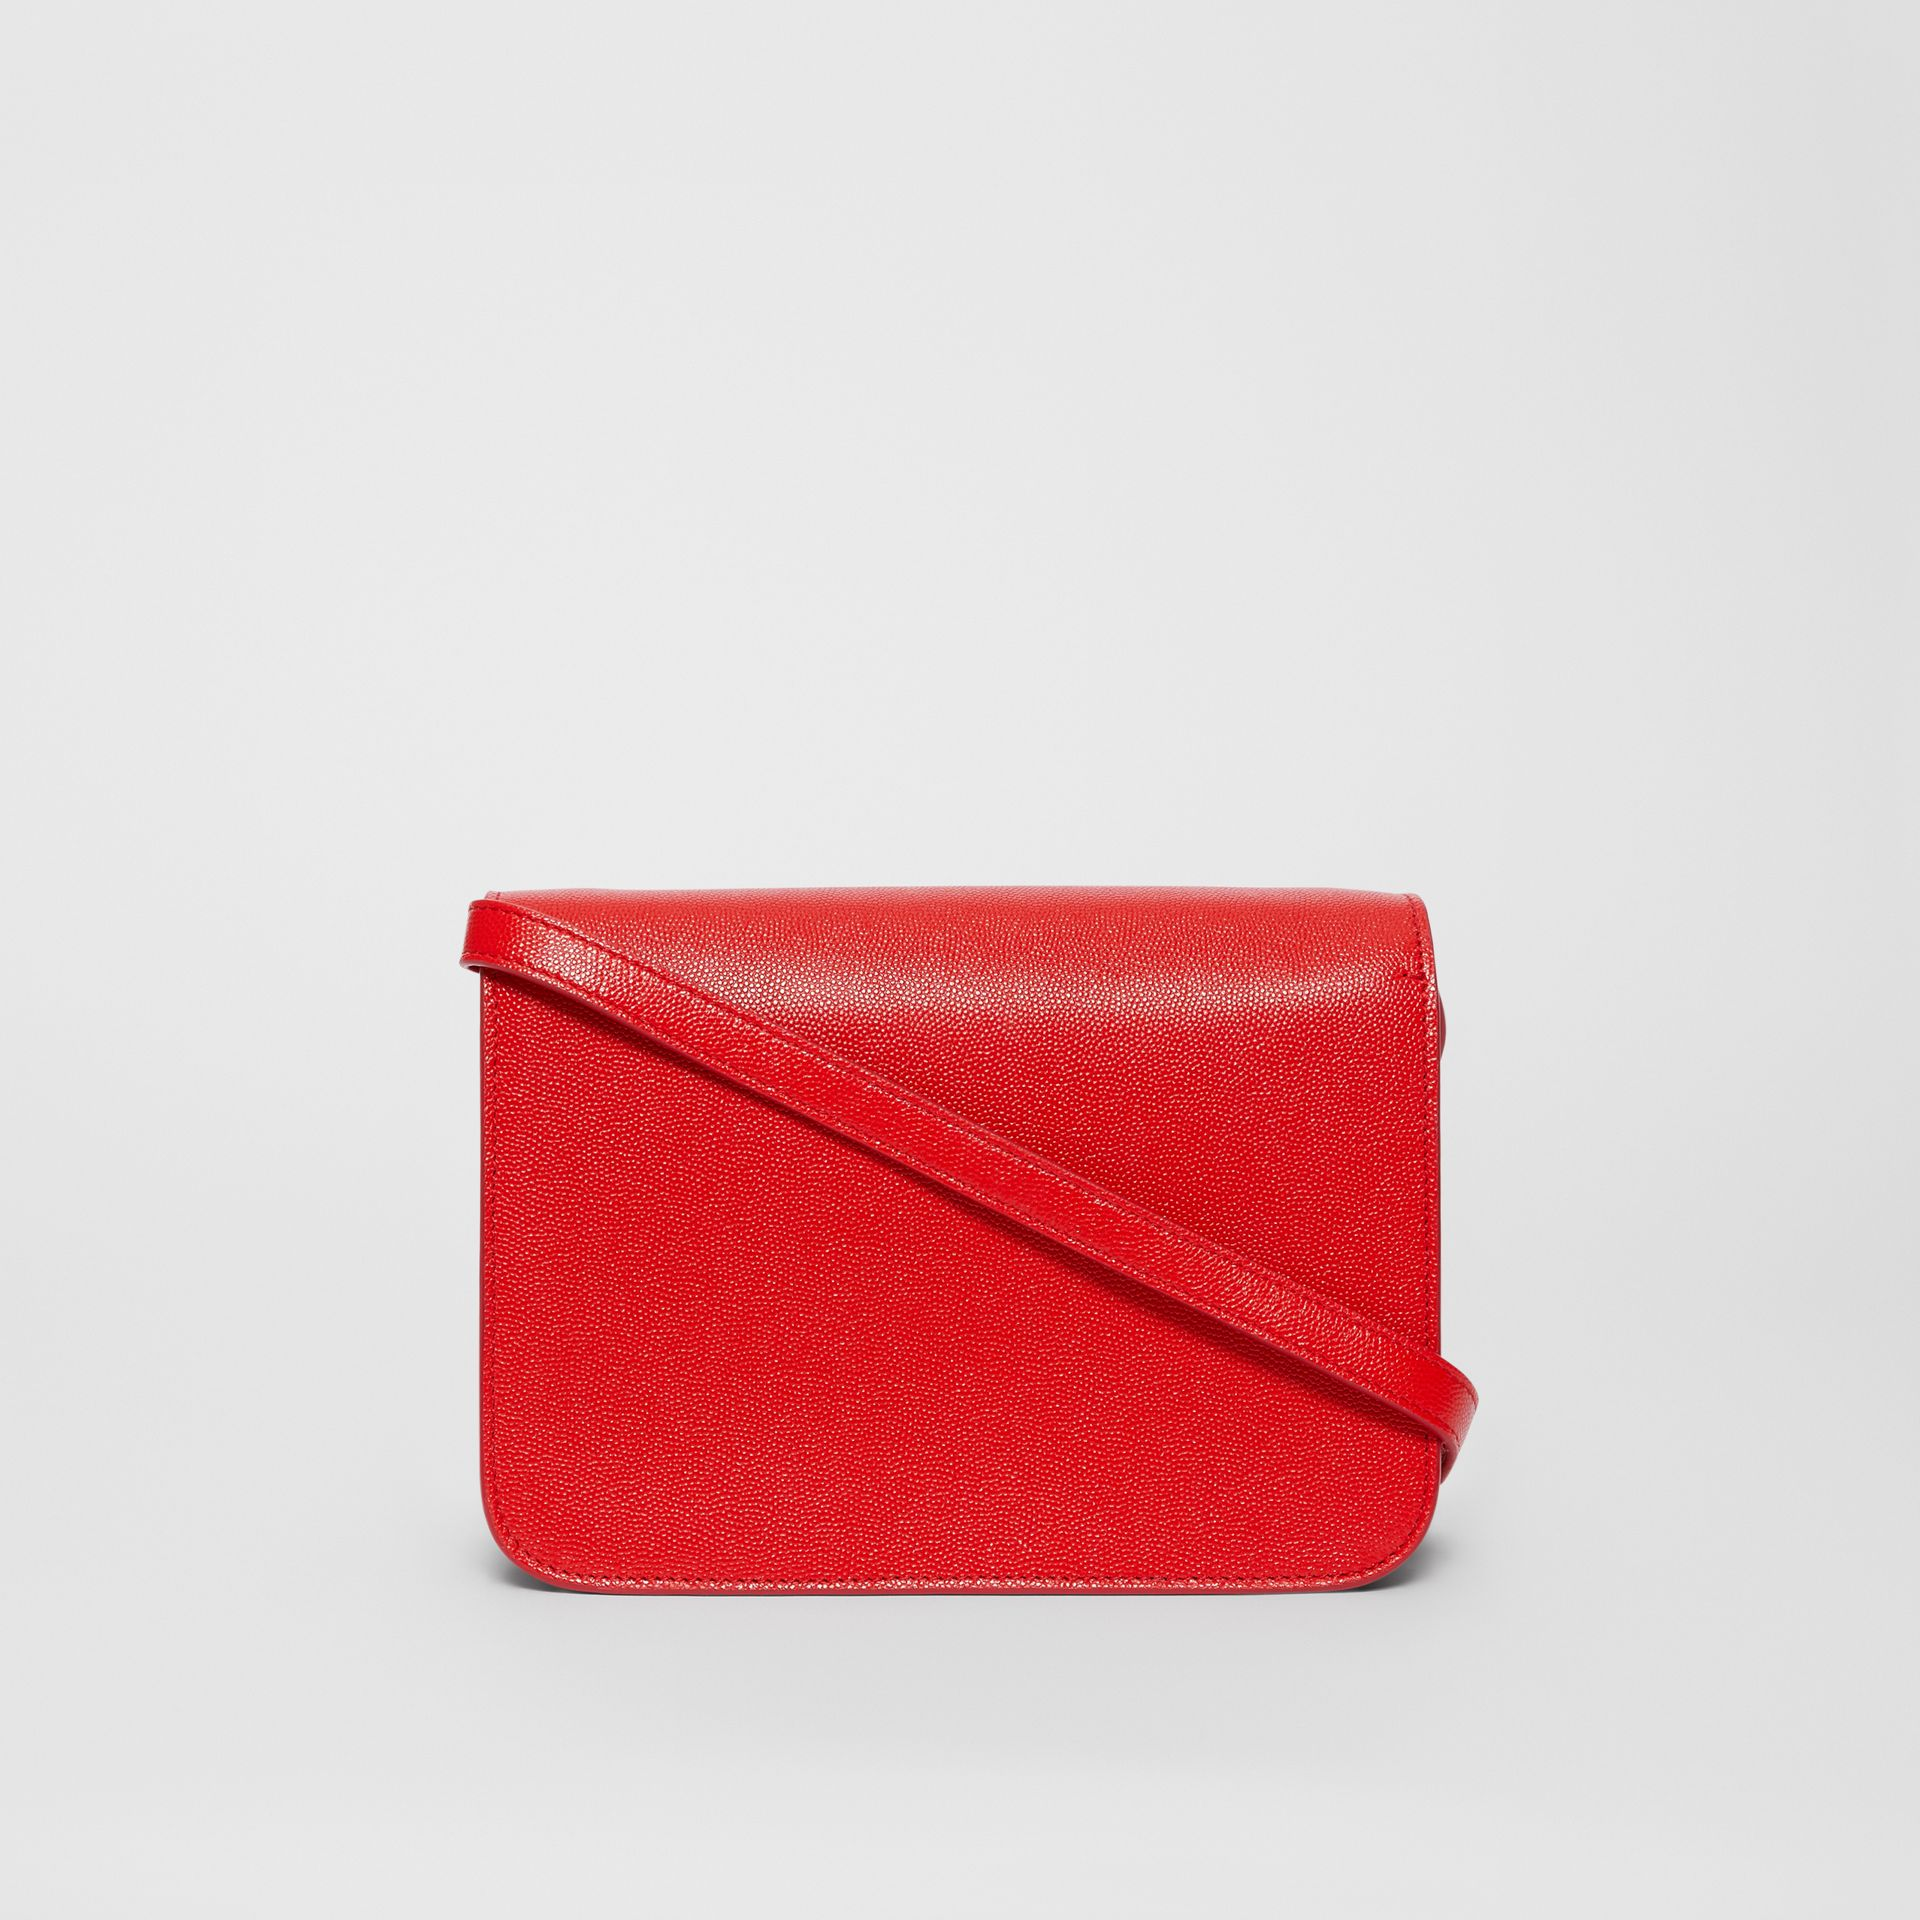 Small Grainy Leather TB Bag in Bright Red - Women | Burberry - gallery image 7